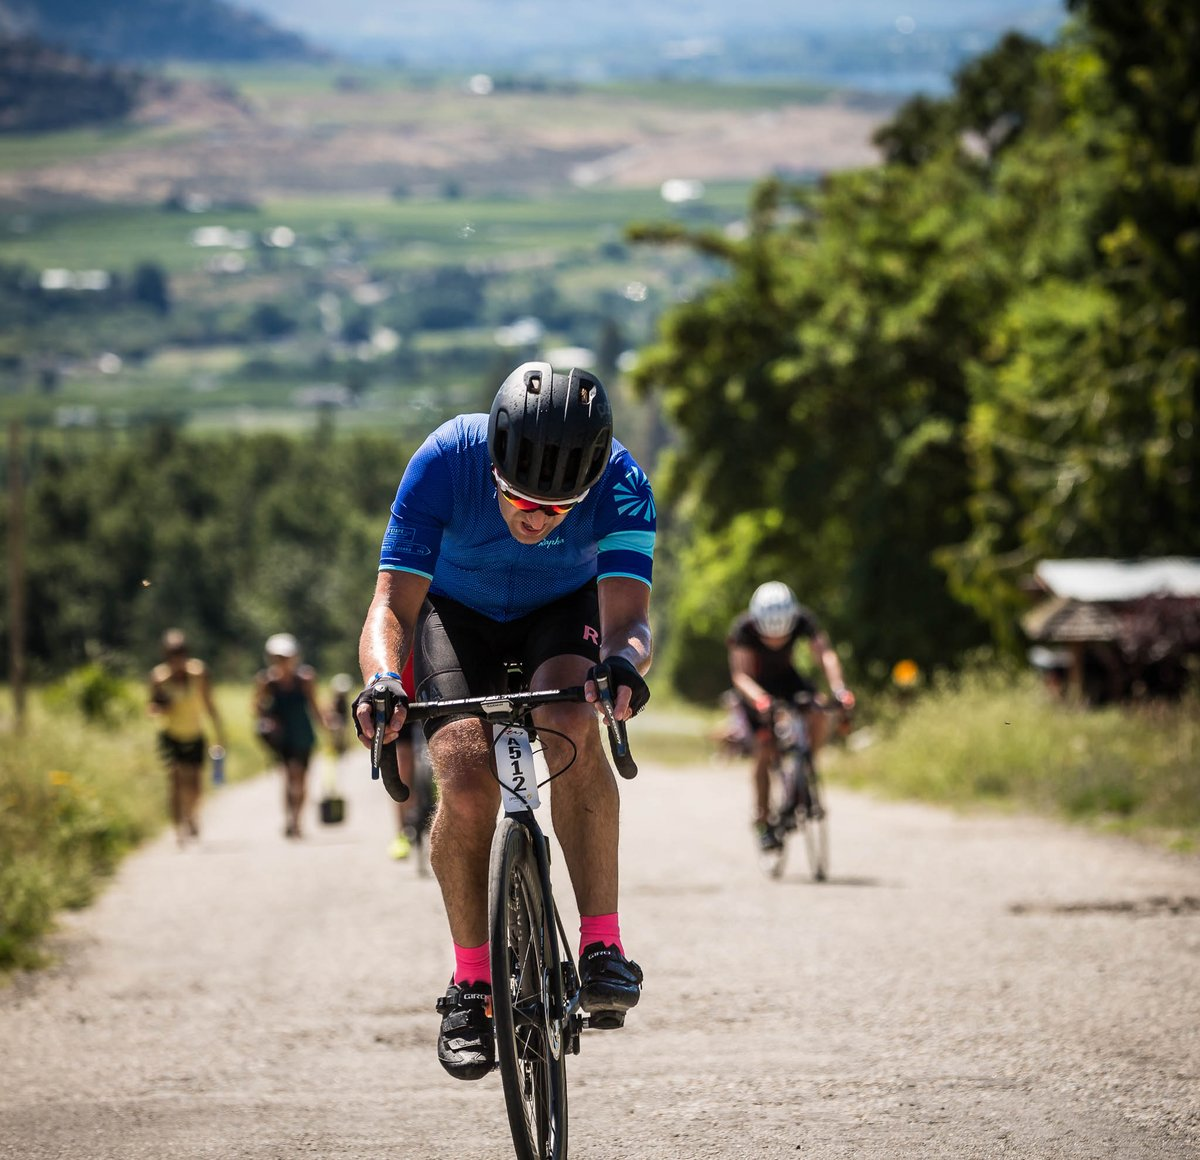 test Twitter Media - The best things come from hard work & determination #bringon2019 Ride the 9th @axelsgranfondo (July 14th, 2019 | Penticton)! Super Early Bird rates till Jan. 4. You'll also be entered to win a @Pinarello_com Razha-K w/ @SRAMroad components & Zipp wheels https://t.co/UddWoEc4Z0 https://t.co/DoVZeCU4gO